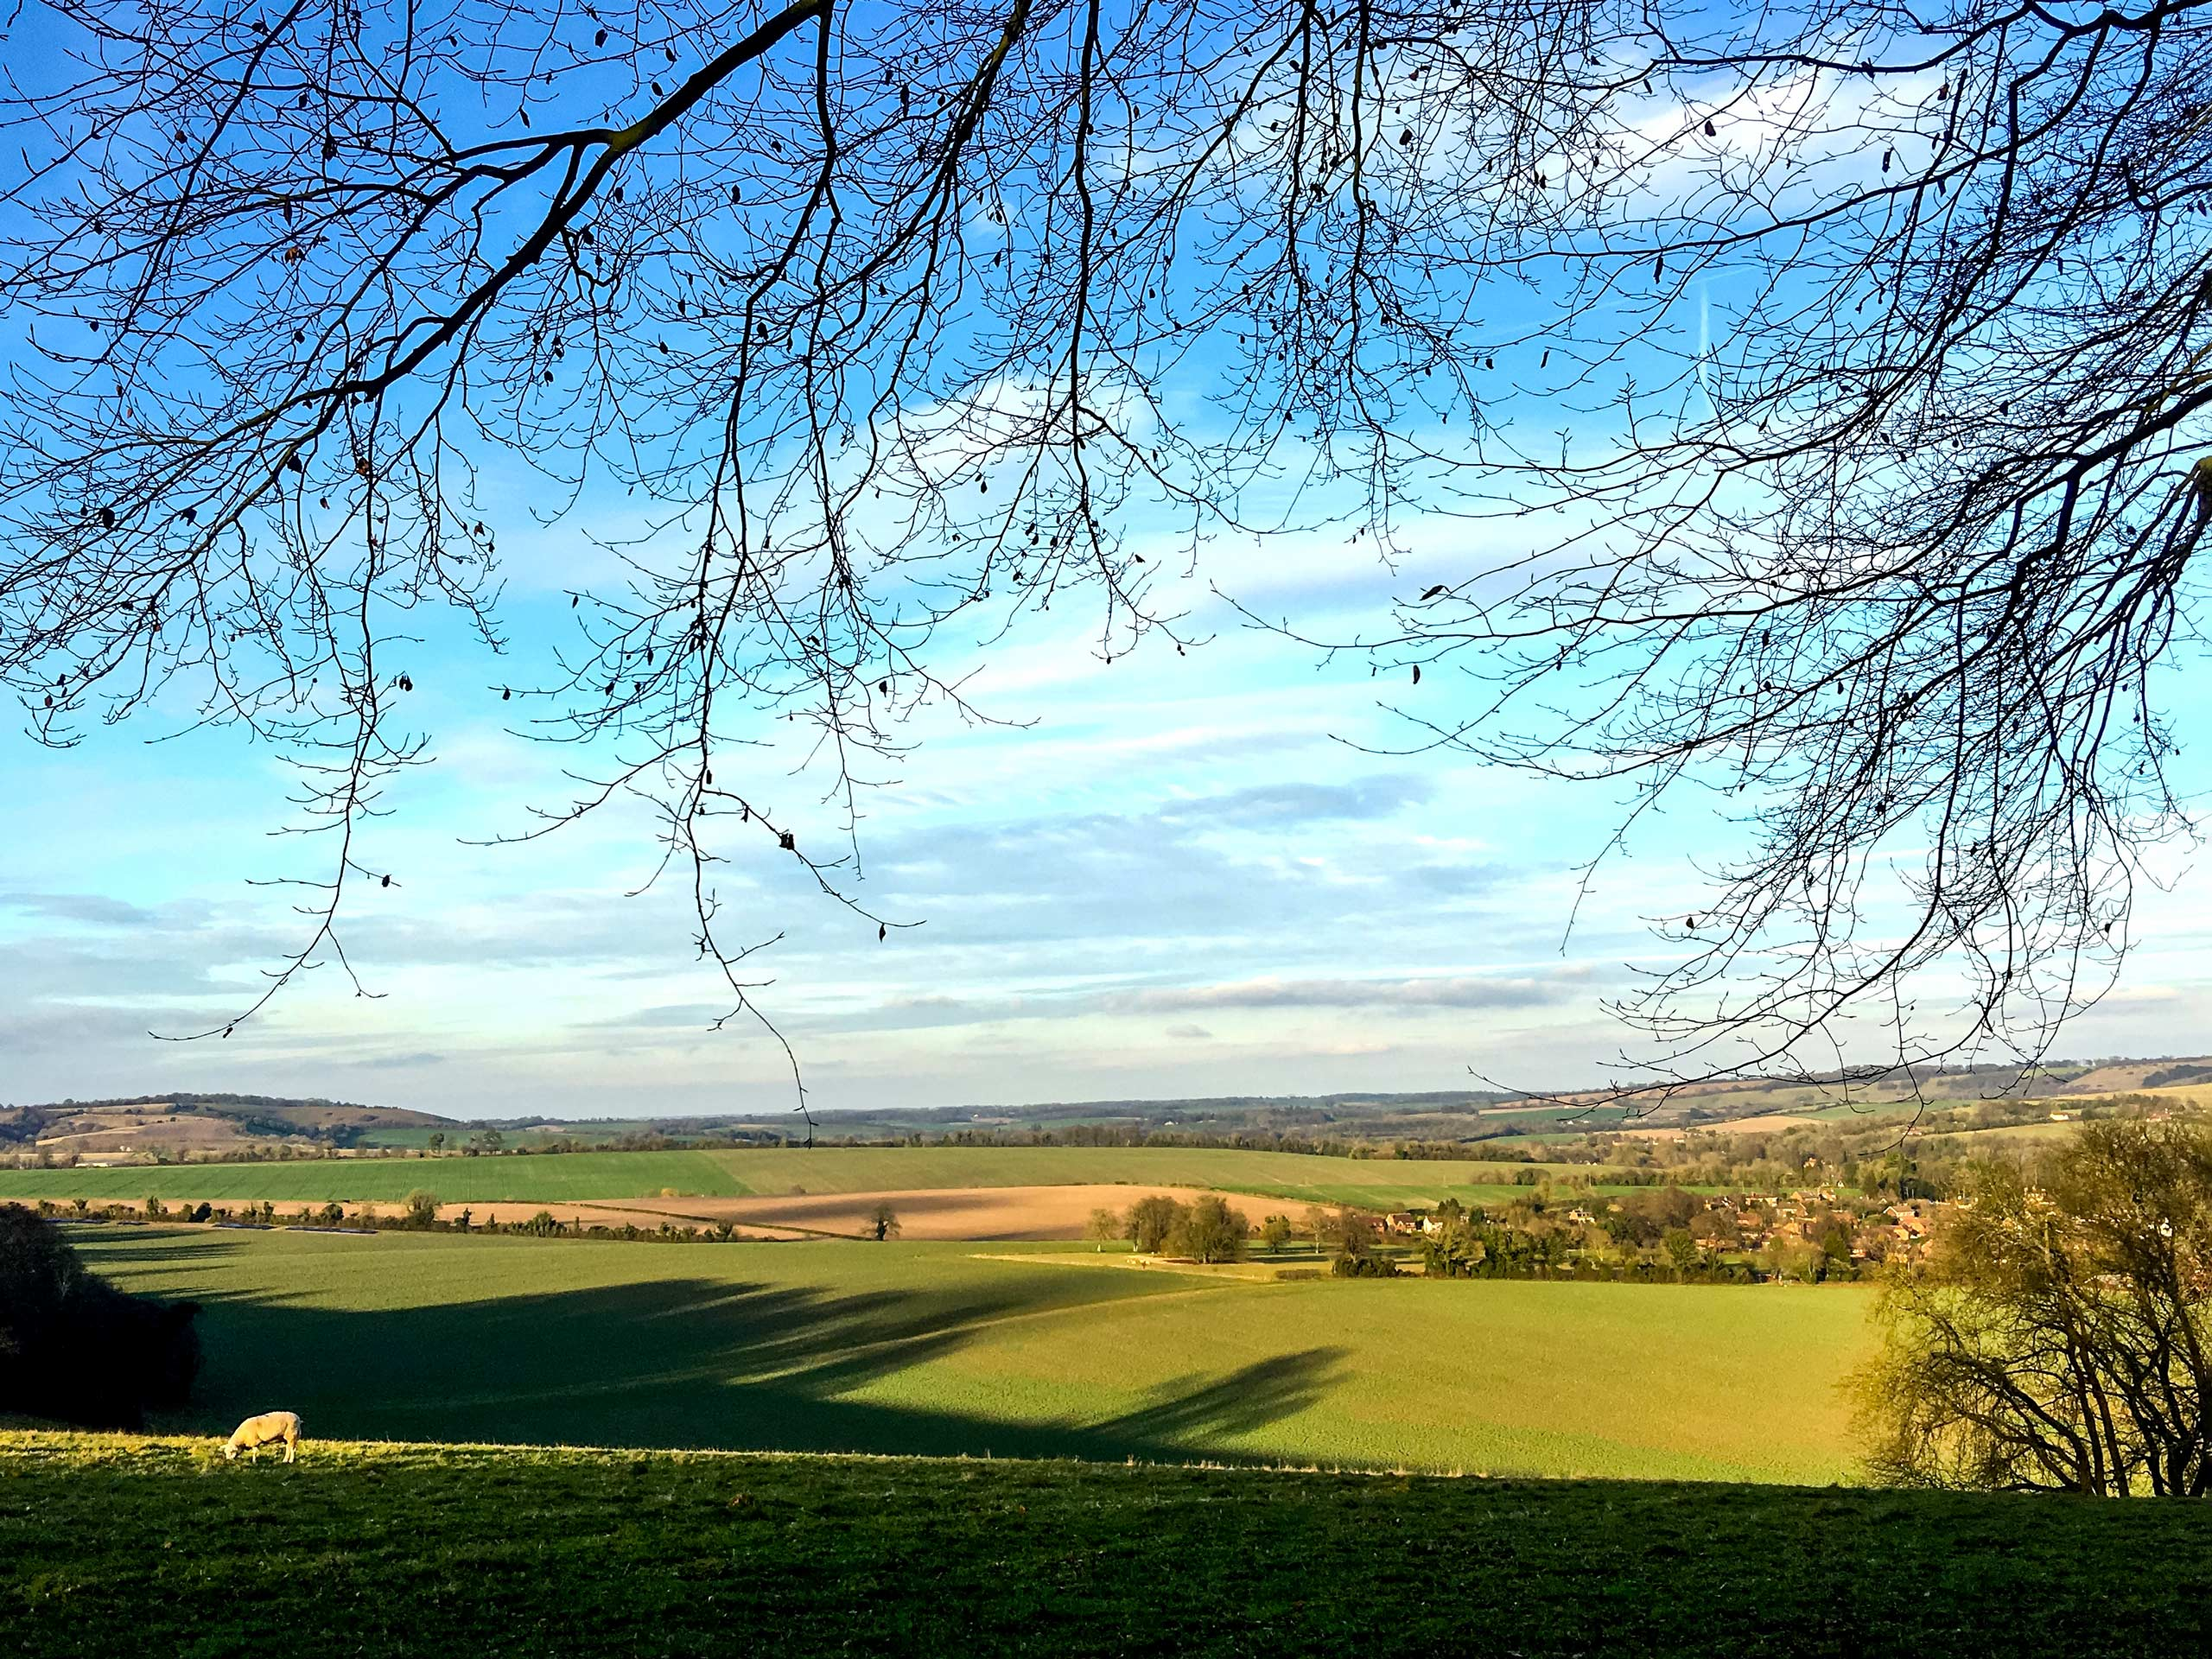 Sunny pastures walking through Meon Valley South Downs England UK